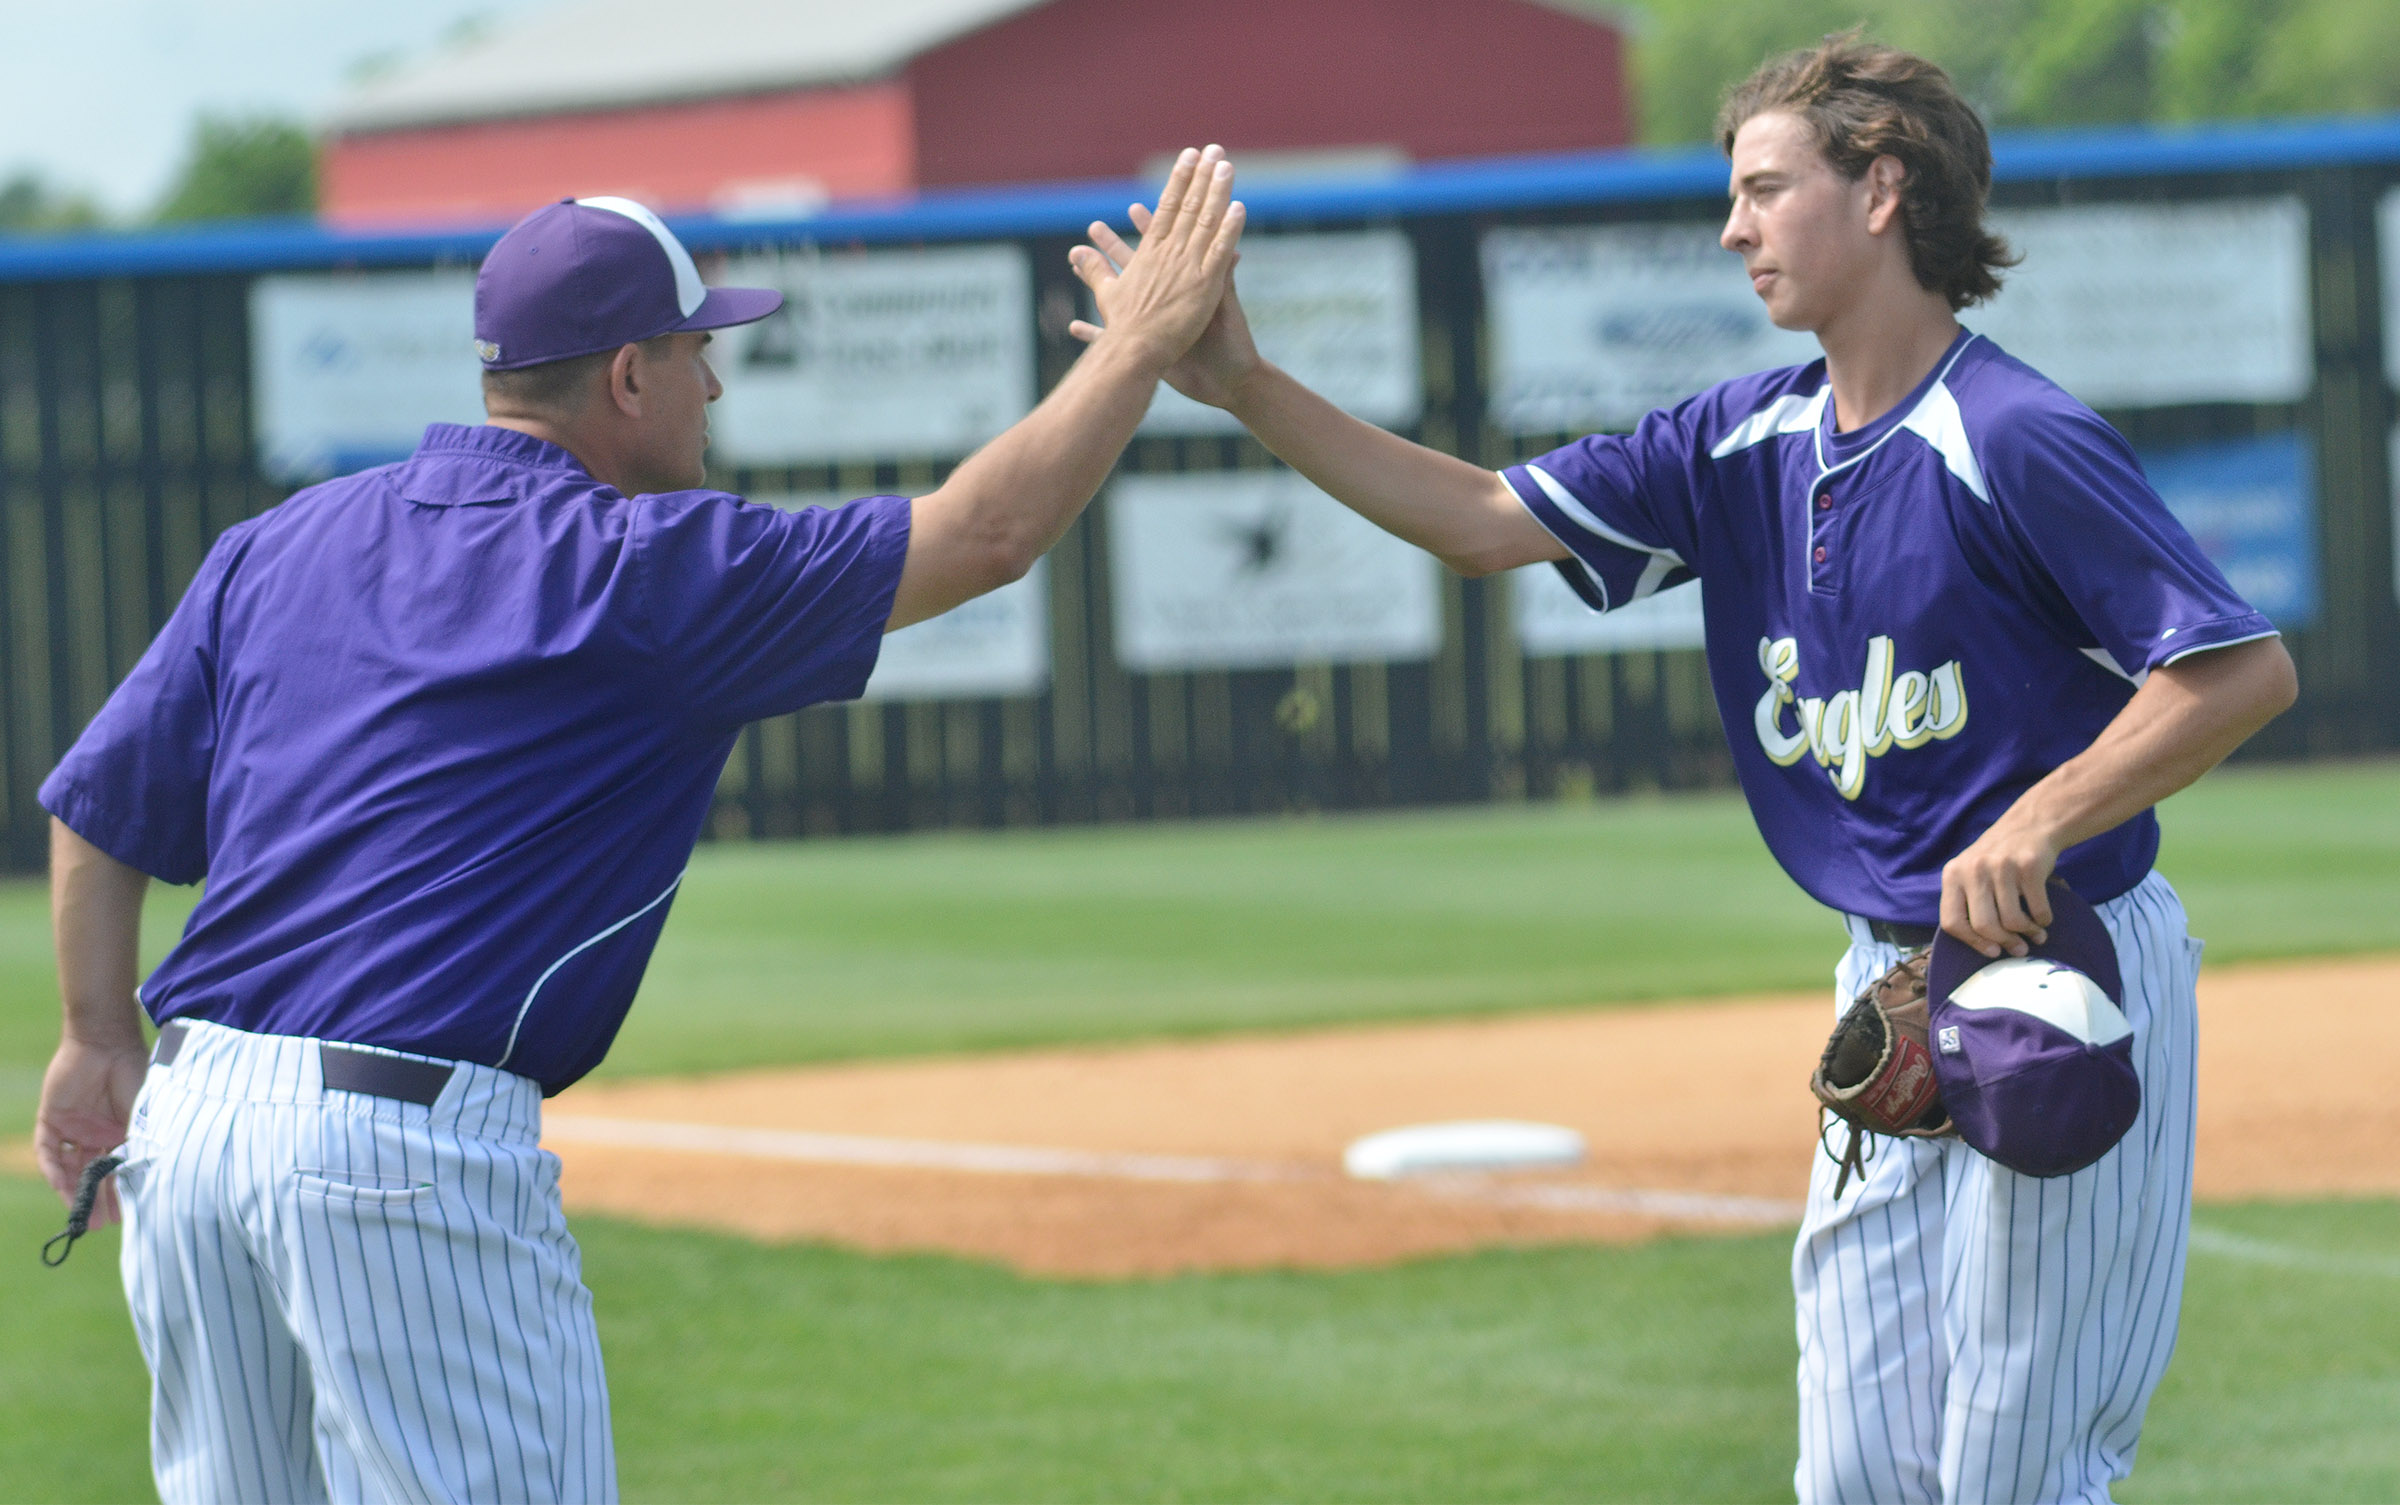 CHS head baseball coach Kirby Smith high fives Campbellsville Middle School eighth-grader John Orberson after an inning.